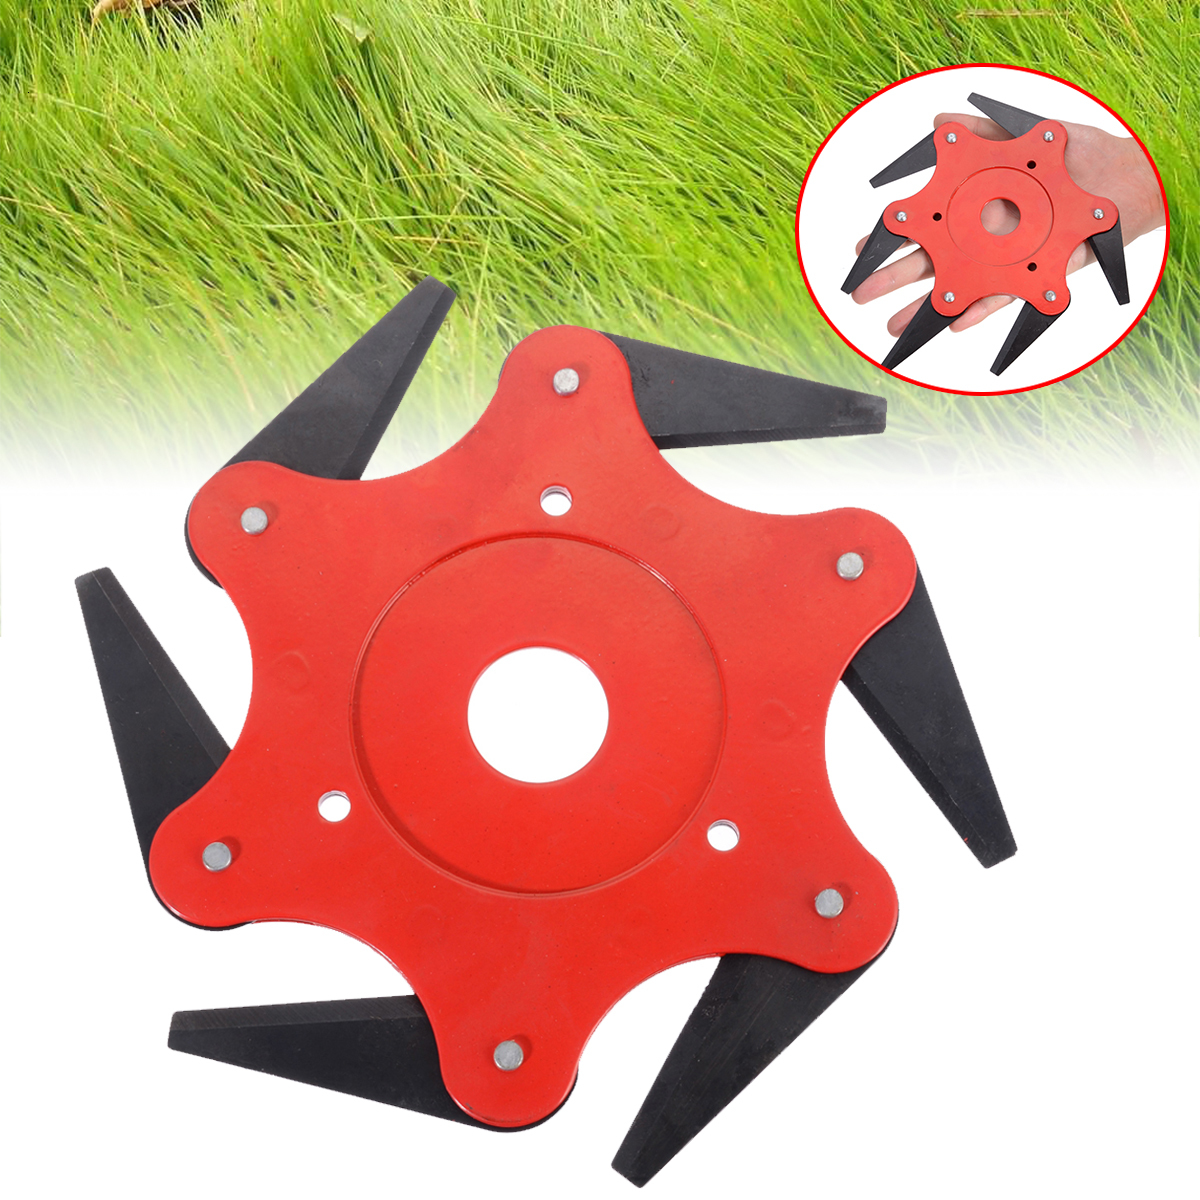 6 Blades Grass Trimmer Head 65MnBrush Cutter Weed Brush Cutting Head Easy Cutting Garden Power Tool Accessories